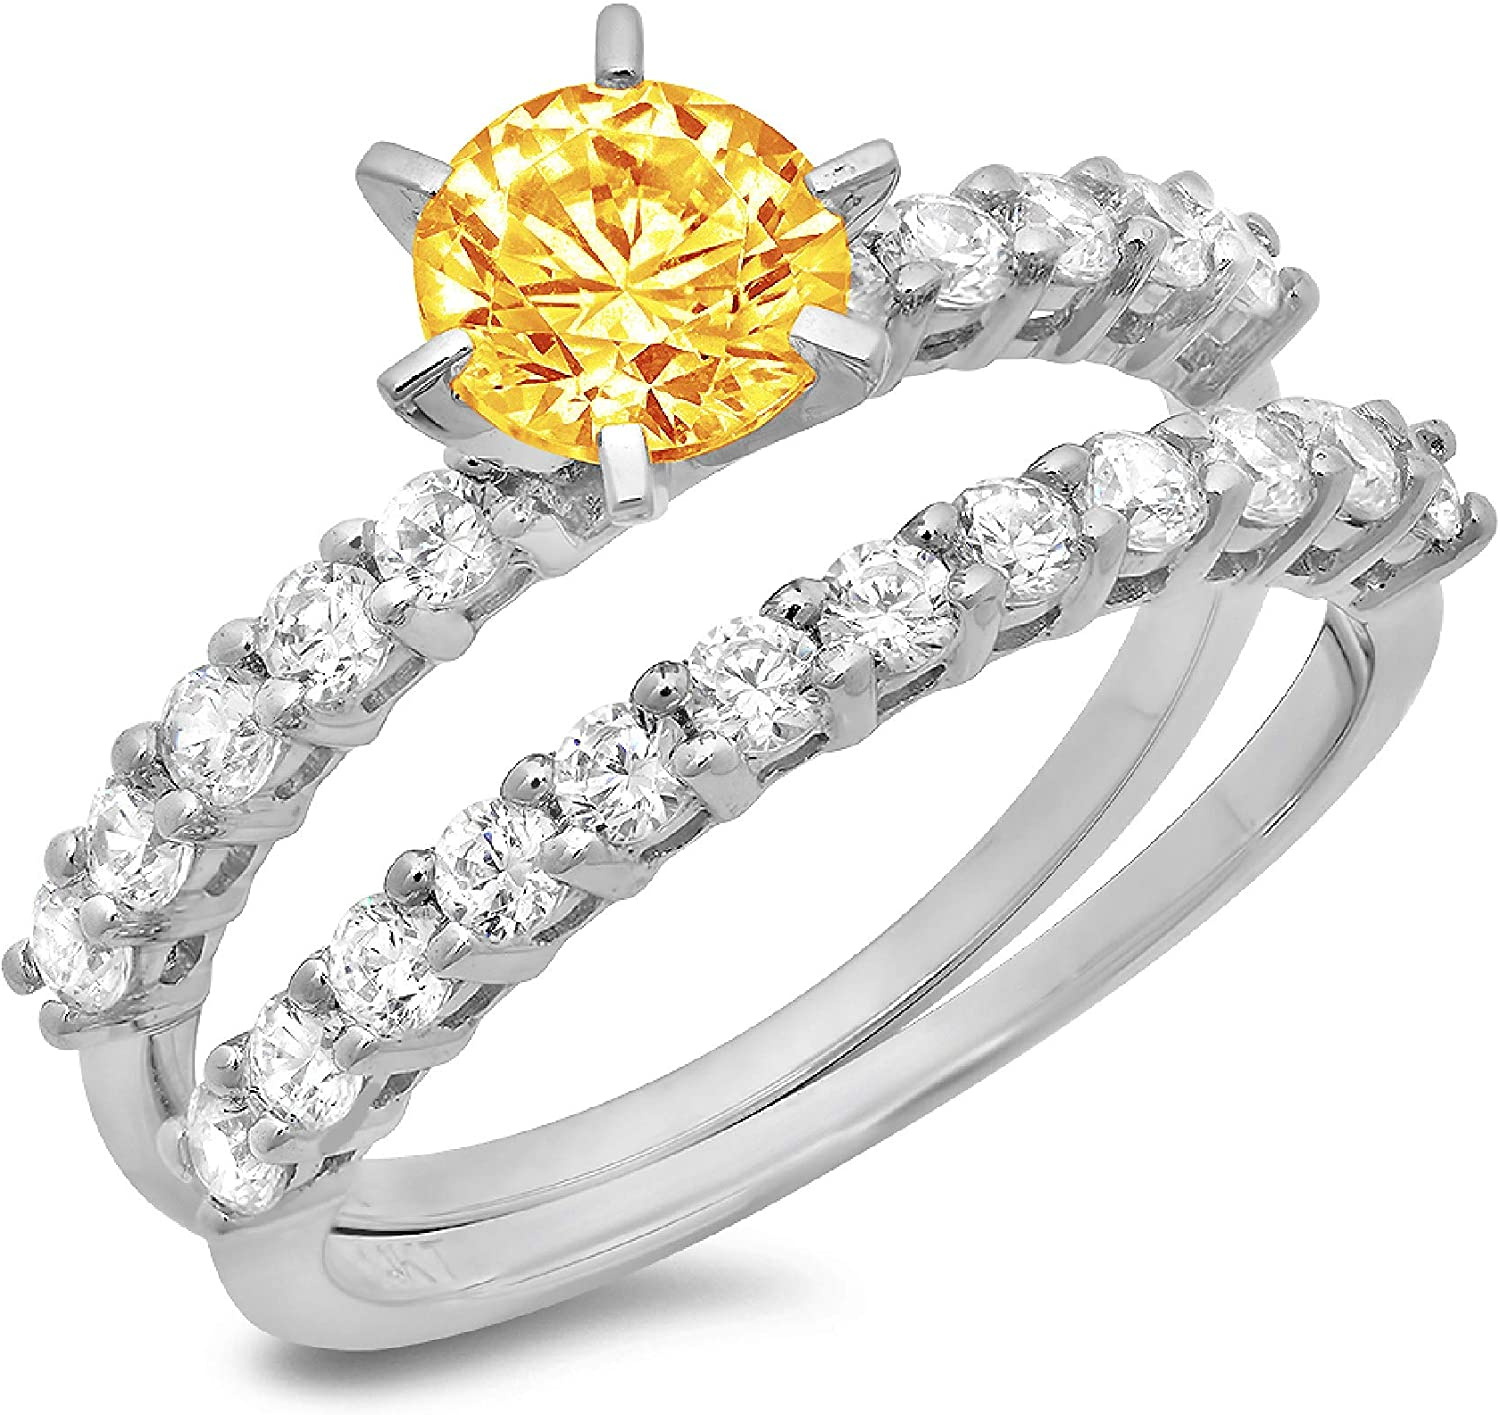 2.94ct Round Cut Pave Solitaire with Accent VVS1 Ideal Natural Yellow Citrine Engagement Promise Designer Anniversary Wedding Bridal Ring band set 14k White Gold